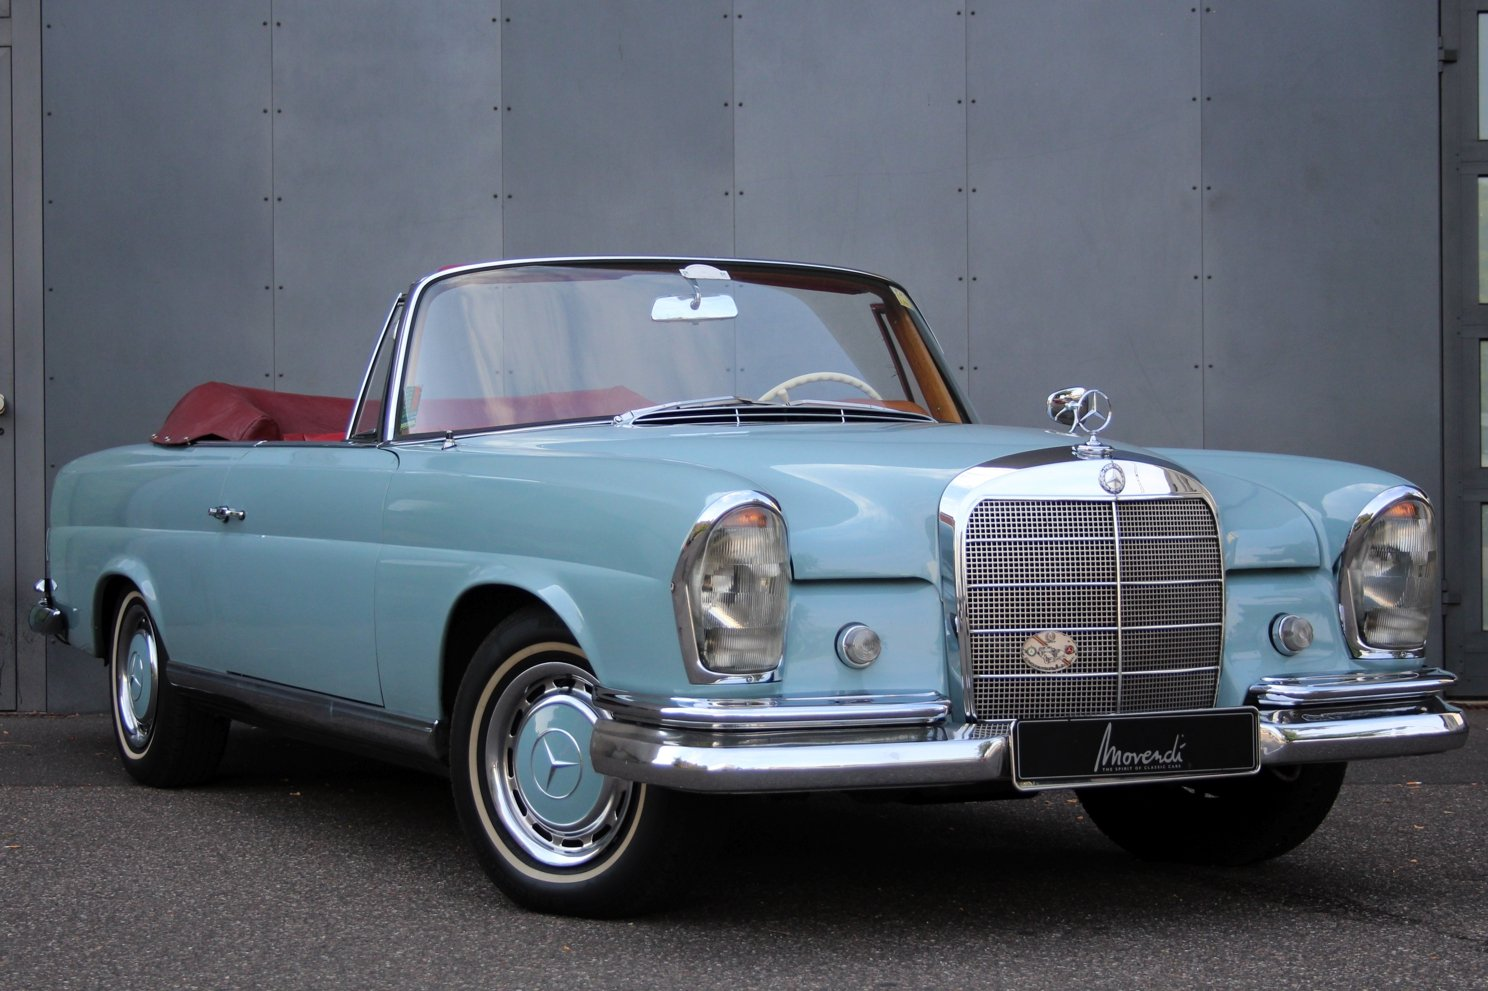 1972 Mercedes-Benz 220 SEB Cabriolet LHD For Sale (picture 1 of 6)